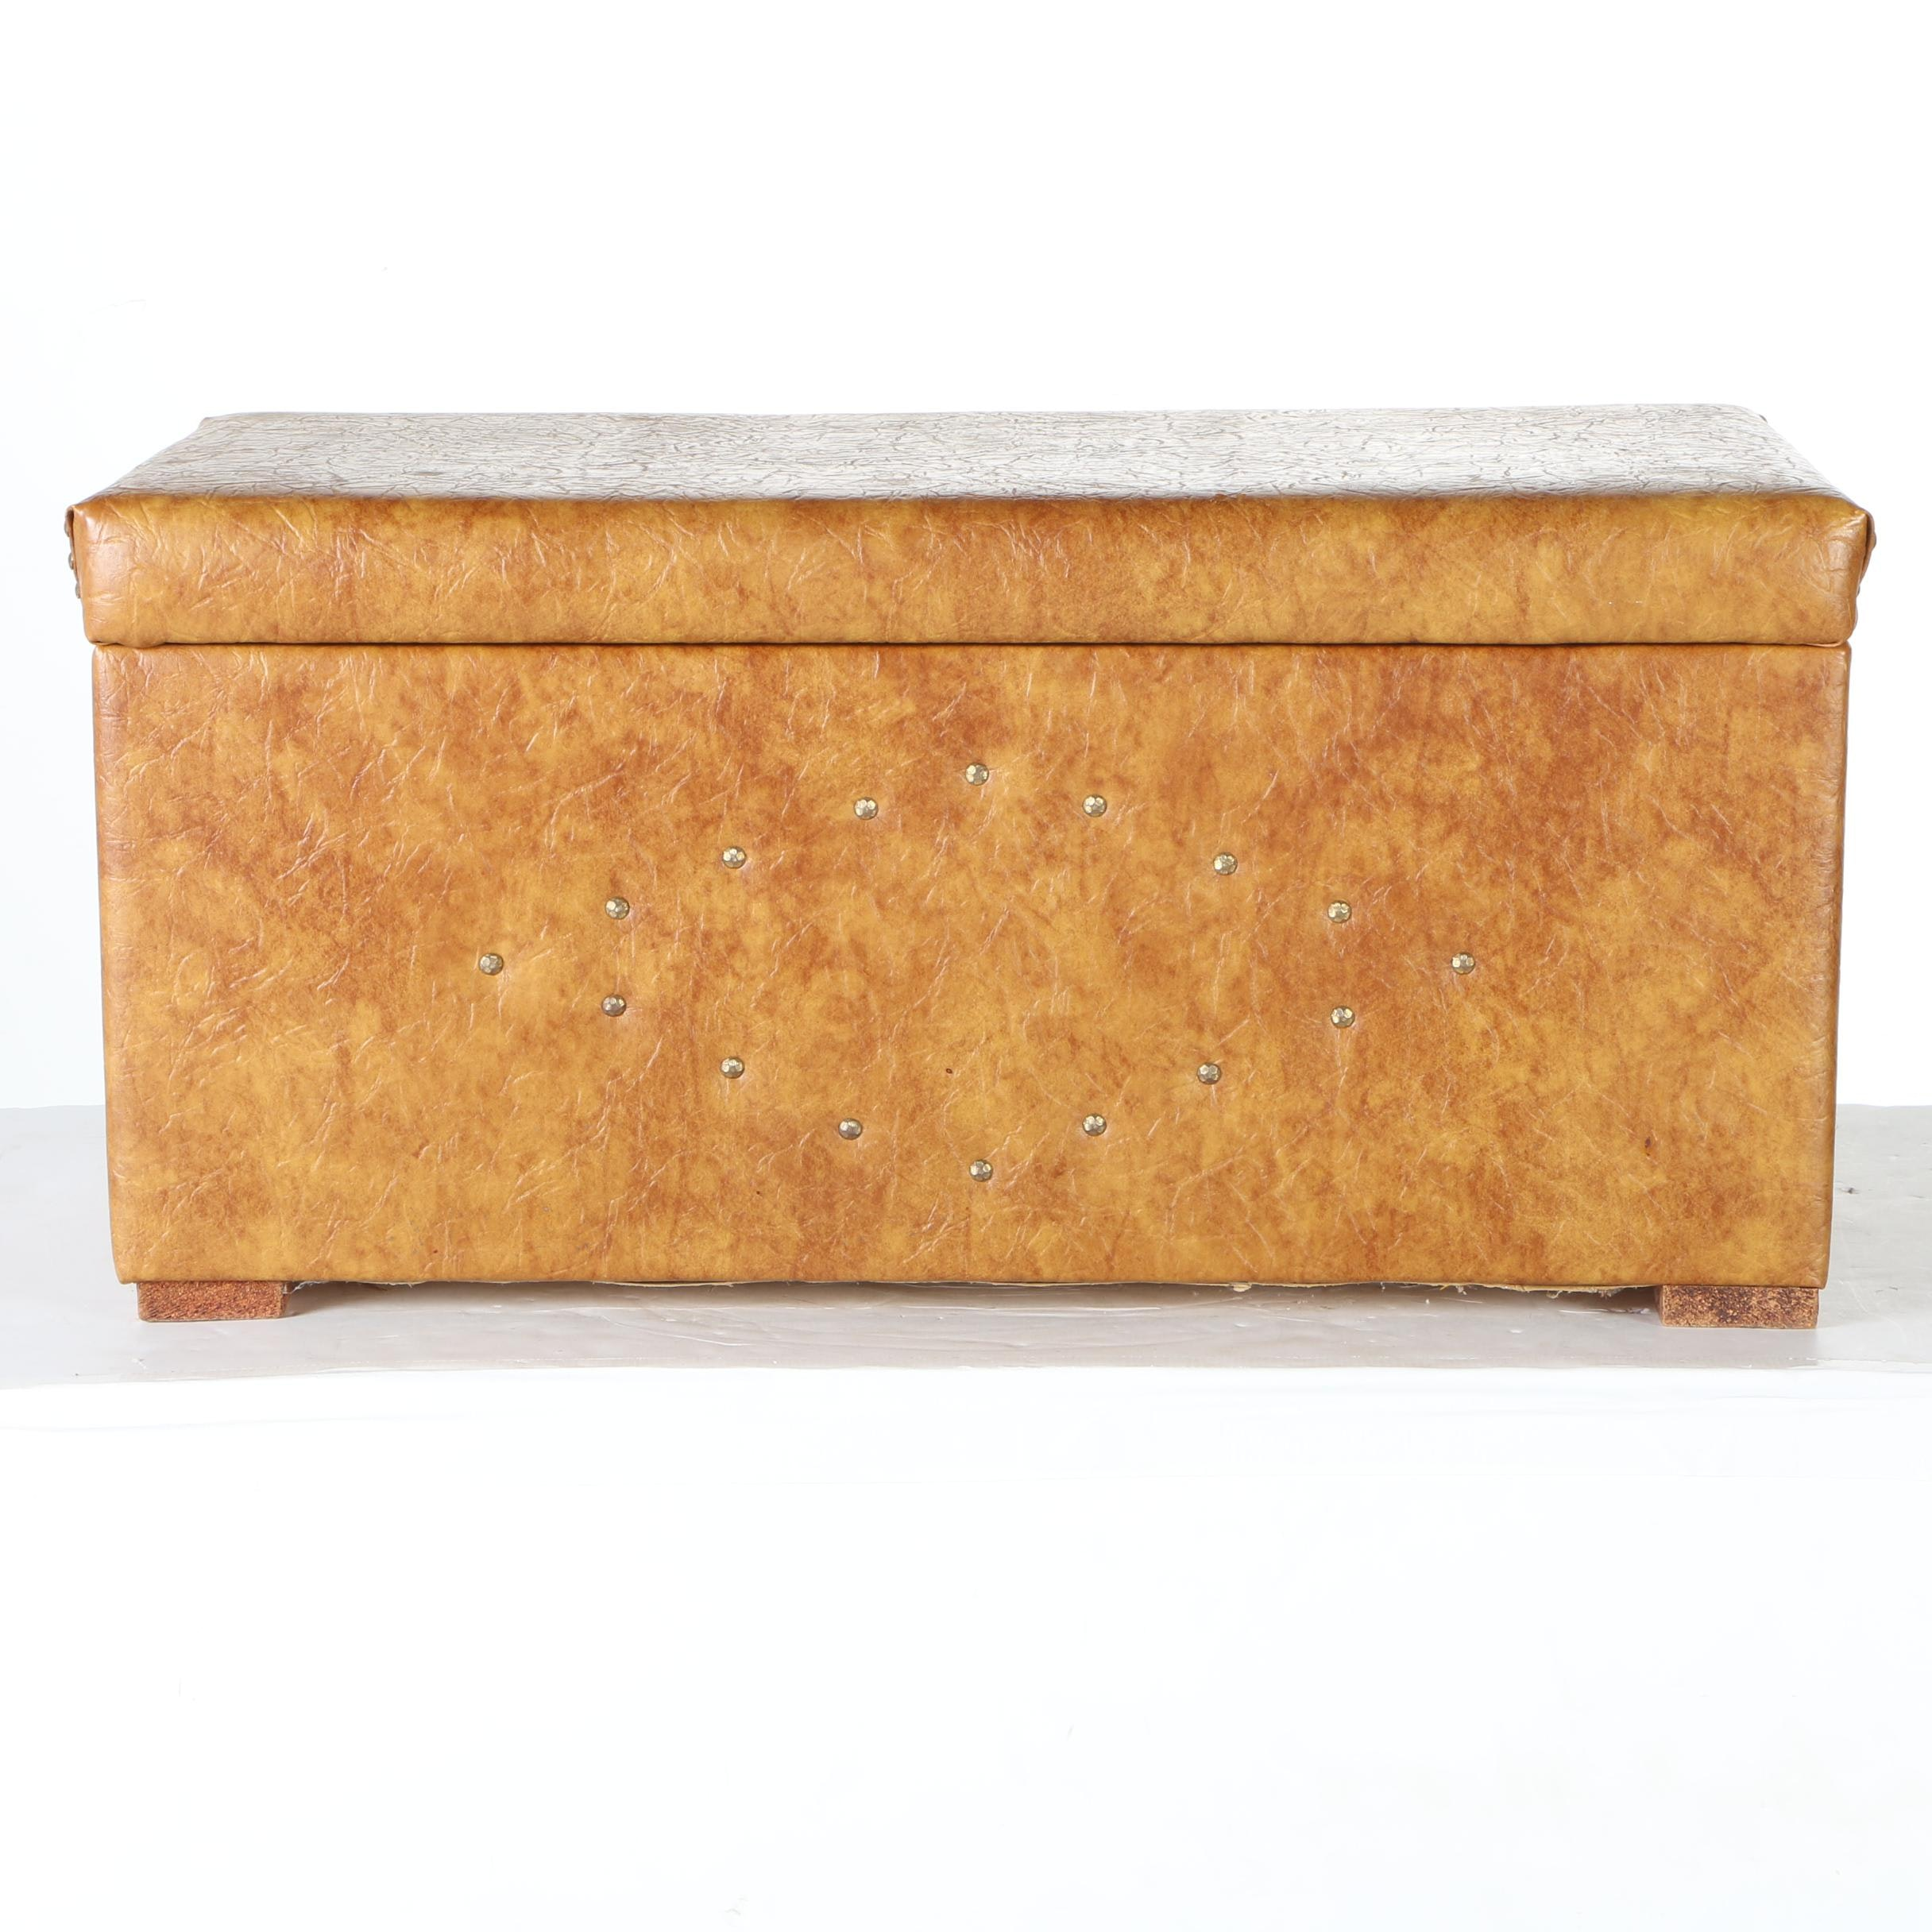 Leather Over Pine Trunk